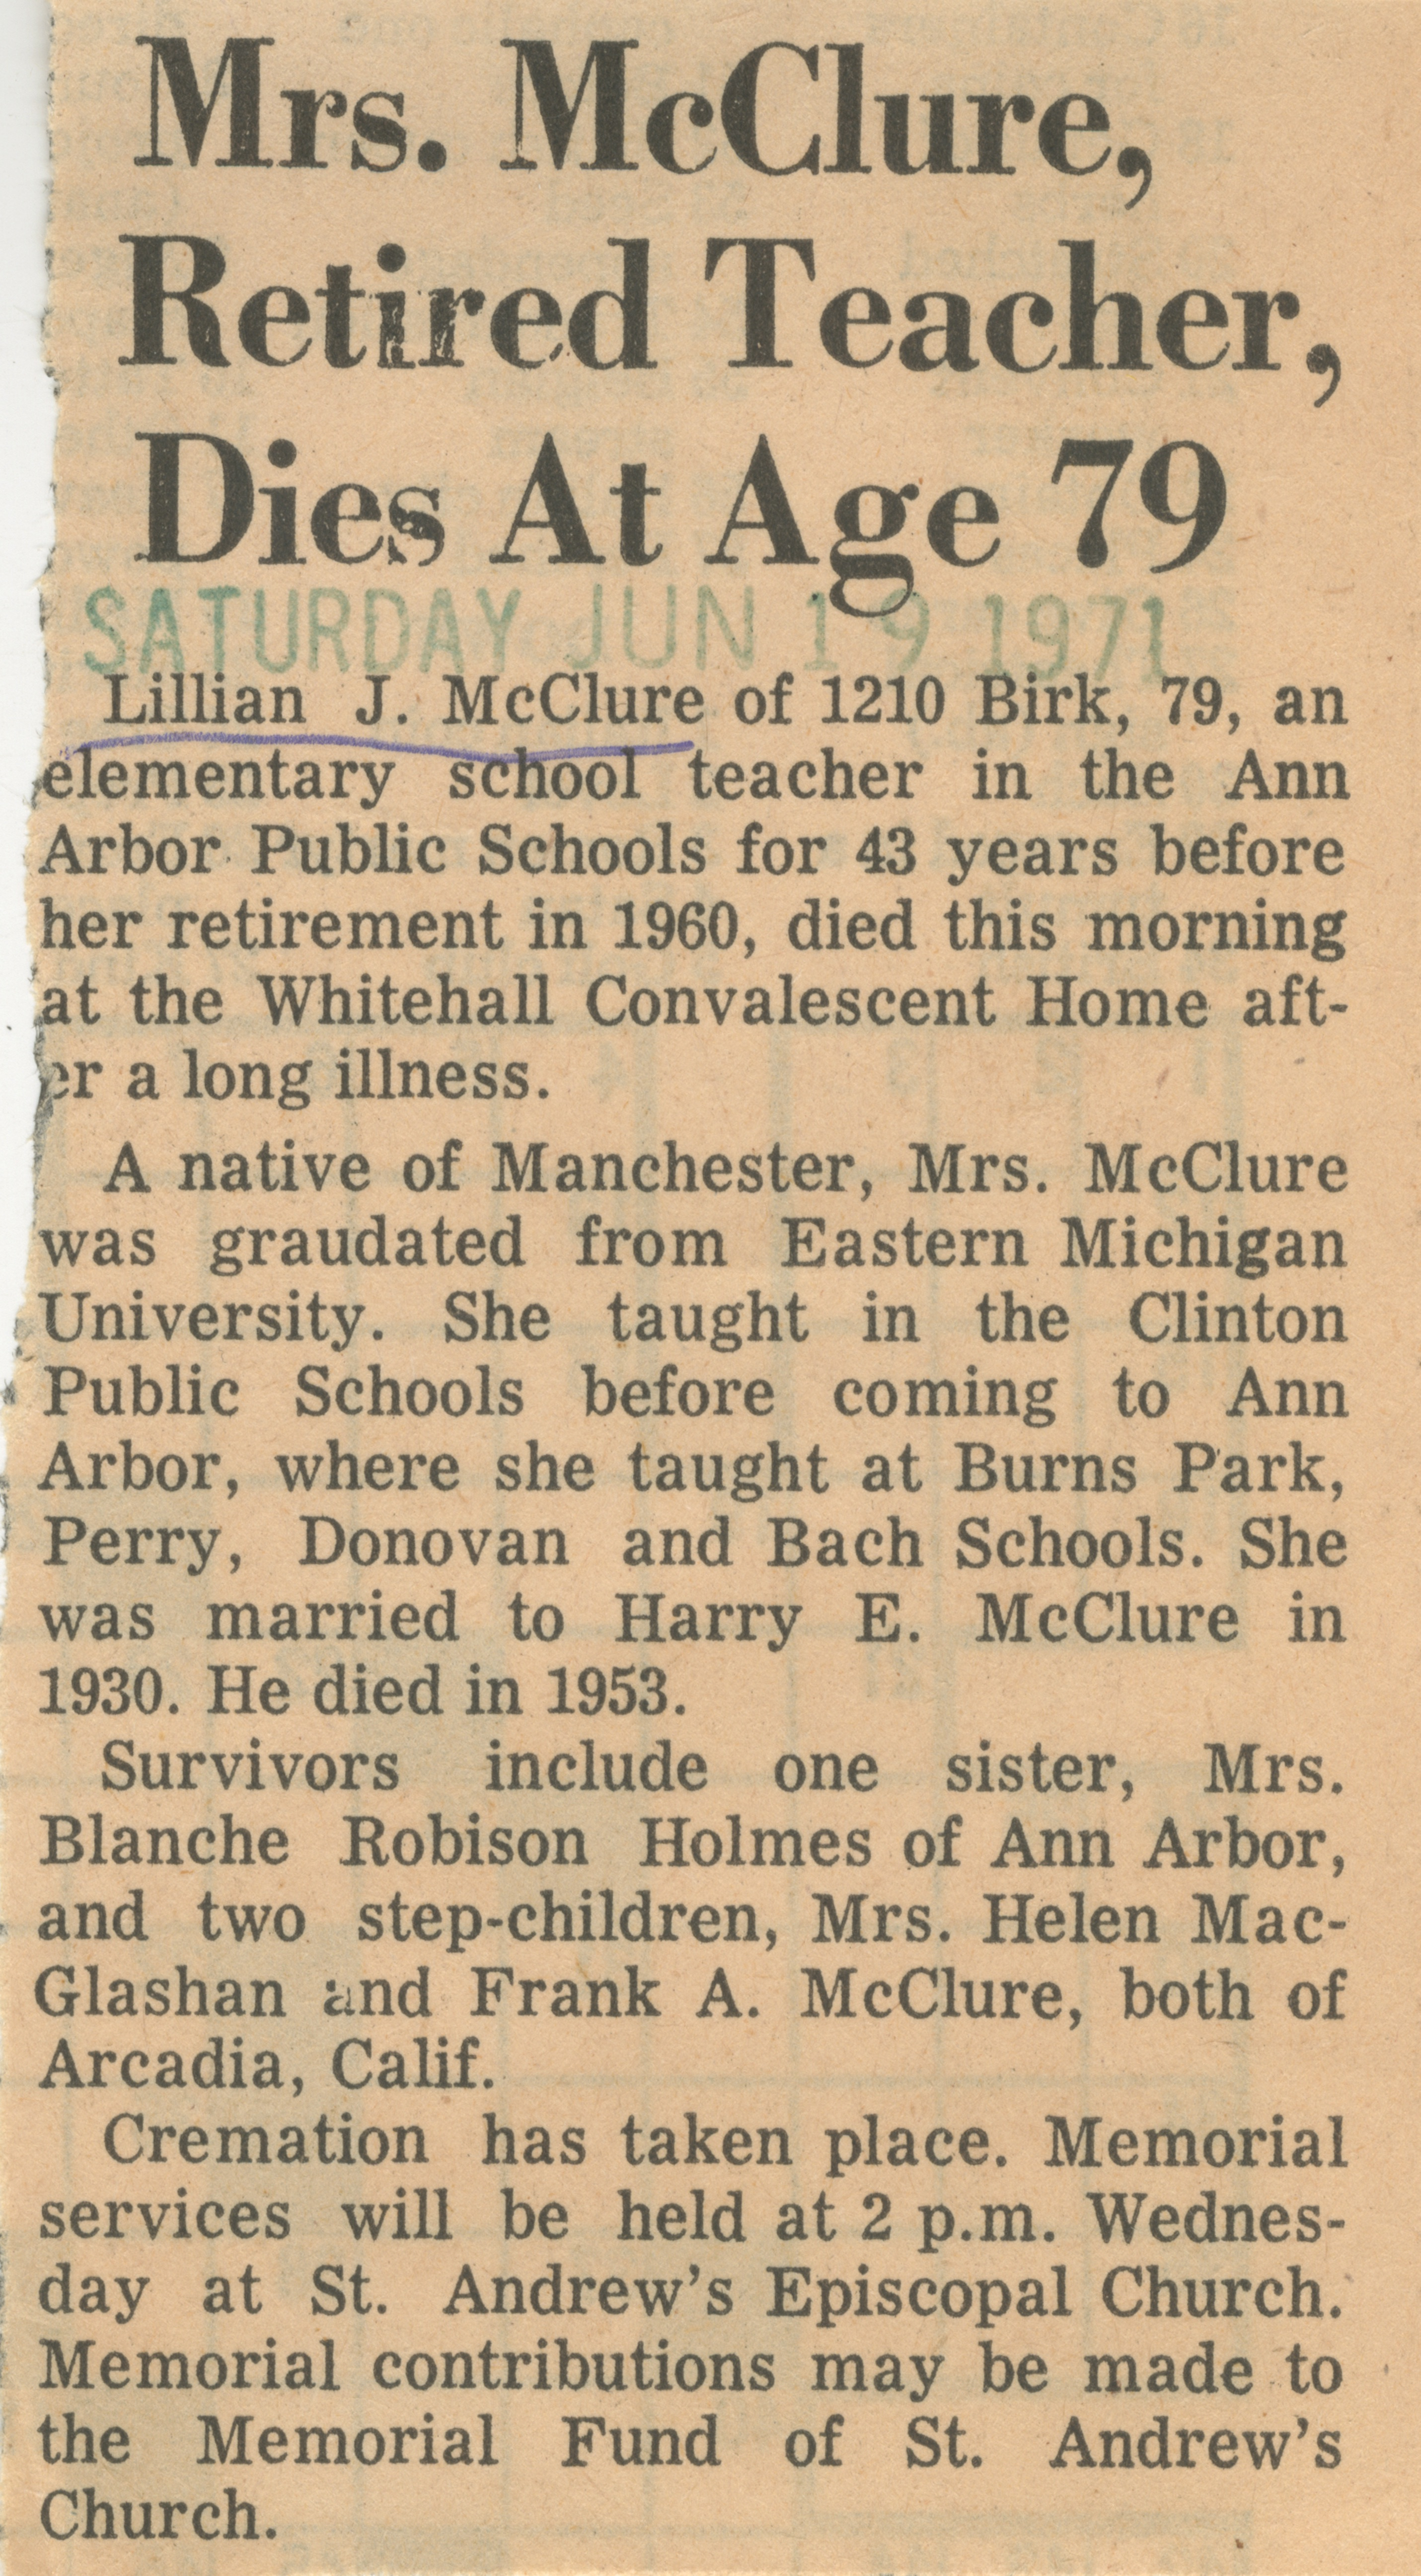 Mrs. McClure, Retired Teacher, Dies At Age 79 image